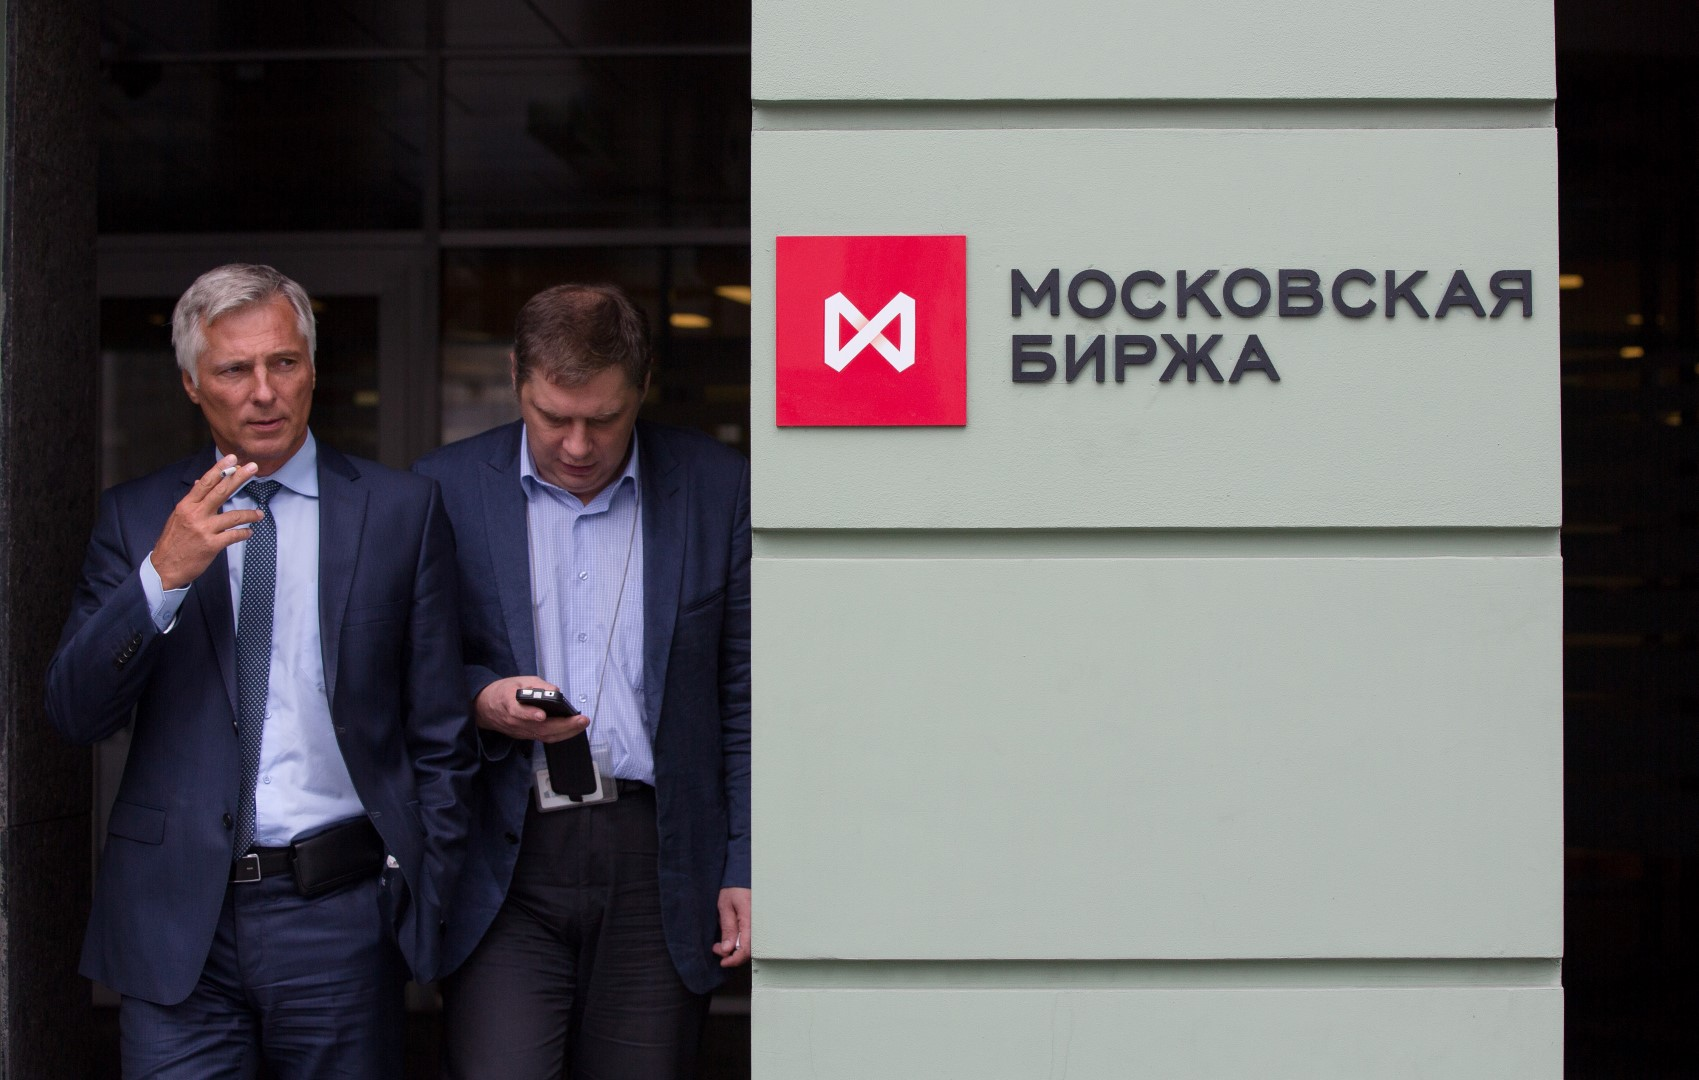 Employees stand and smoke in an alcove neae the entrance to the OAO Moscow Exchange in Moscow, Russia, on Thursday, Aug. 29, 2013. Russia's main stock and fixed-income exchange will move on Sept. 2 from the current system of T+0, in which trades must be settled on execution, to a T+2 mode for all equities, Russian depositary receipts and exchange-traded funds. Photographer: Andrey Rudakov/Bloomberg